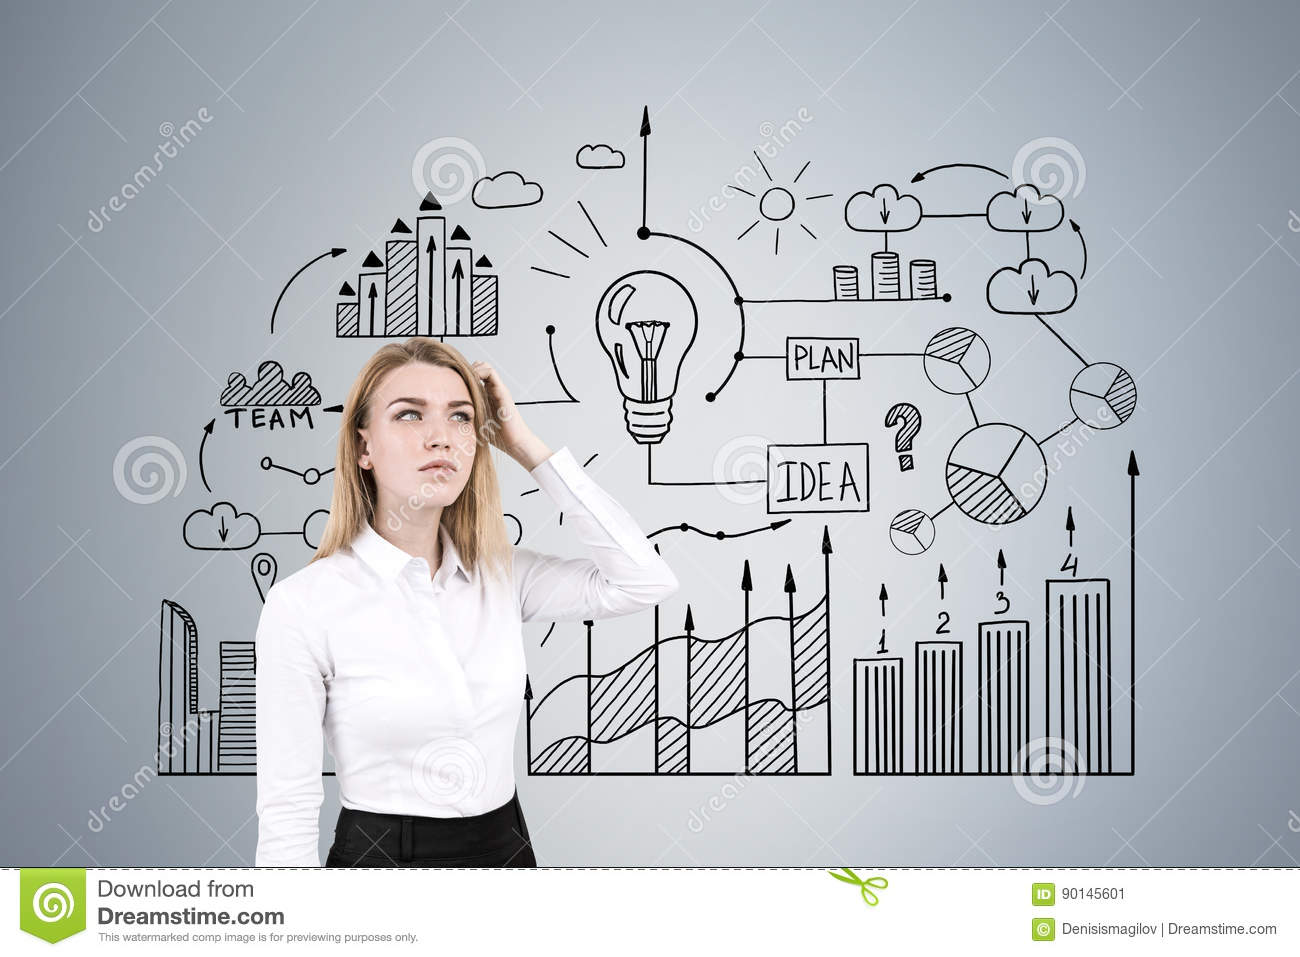 Woman Scratching Head And Business Diagram Stock Image - Image of ...